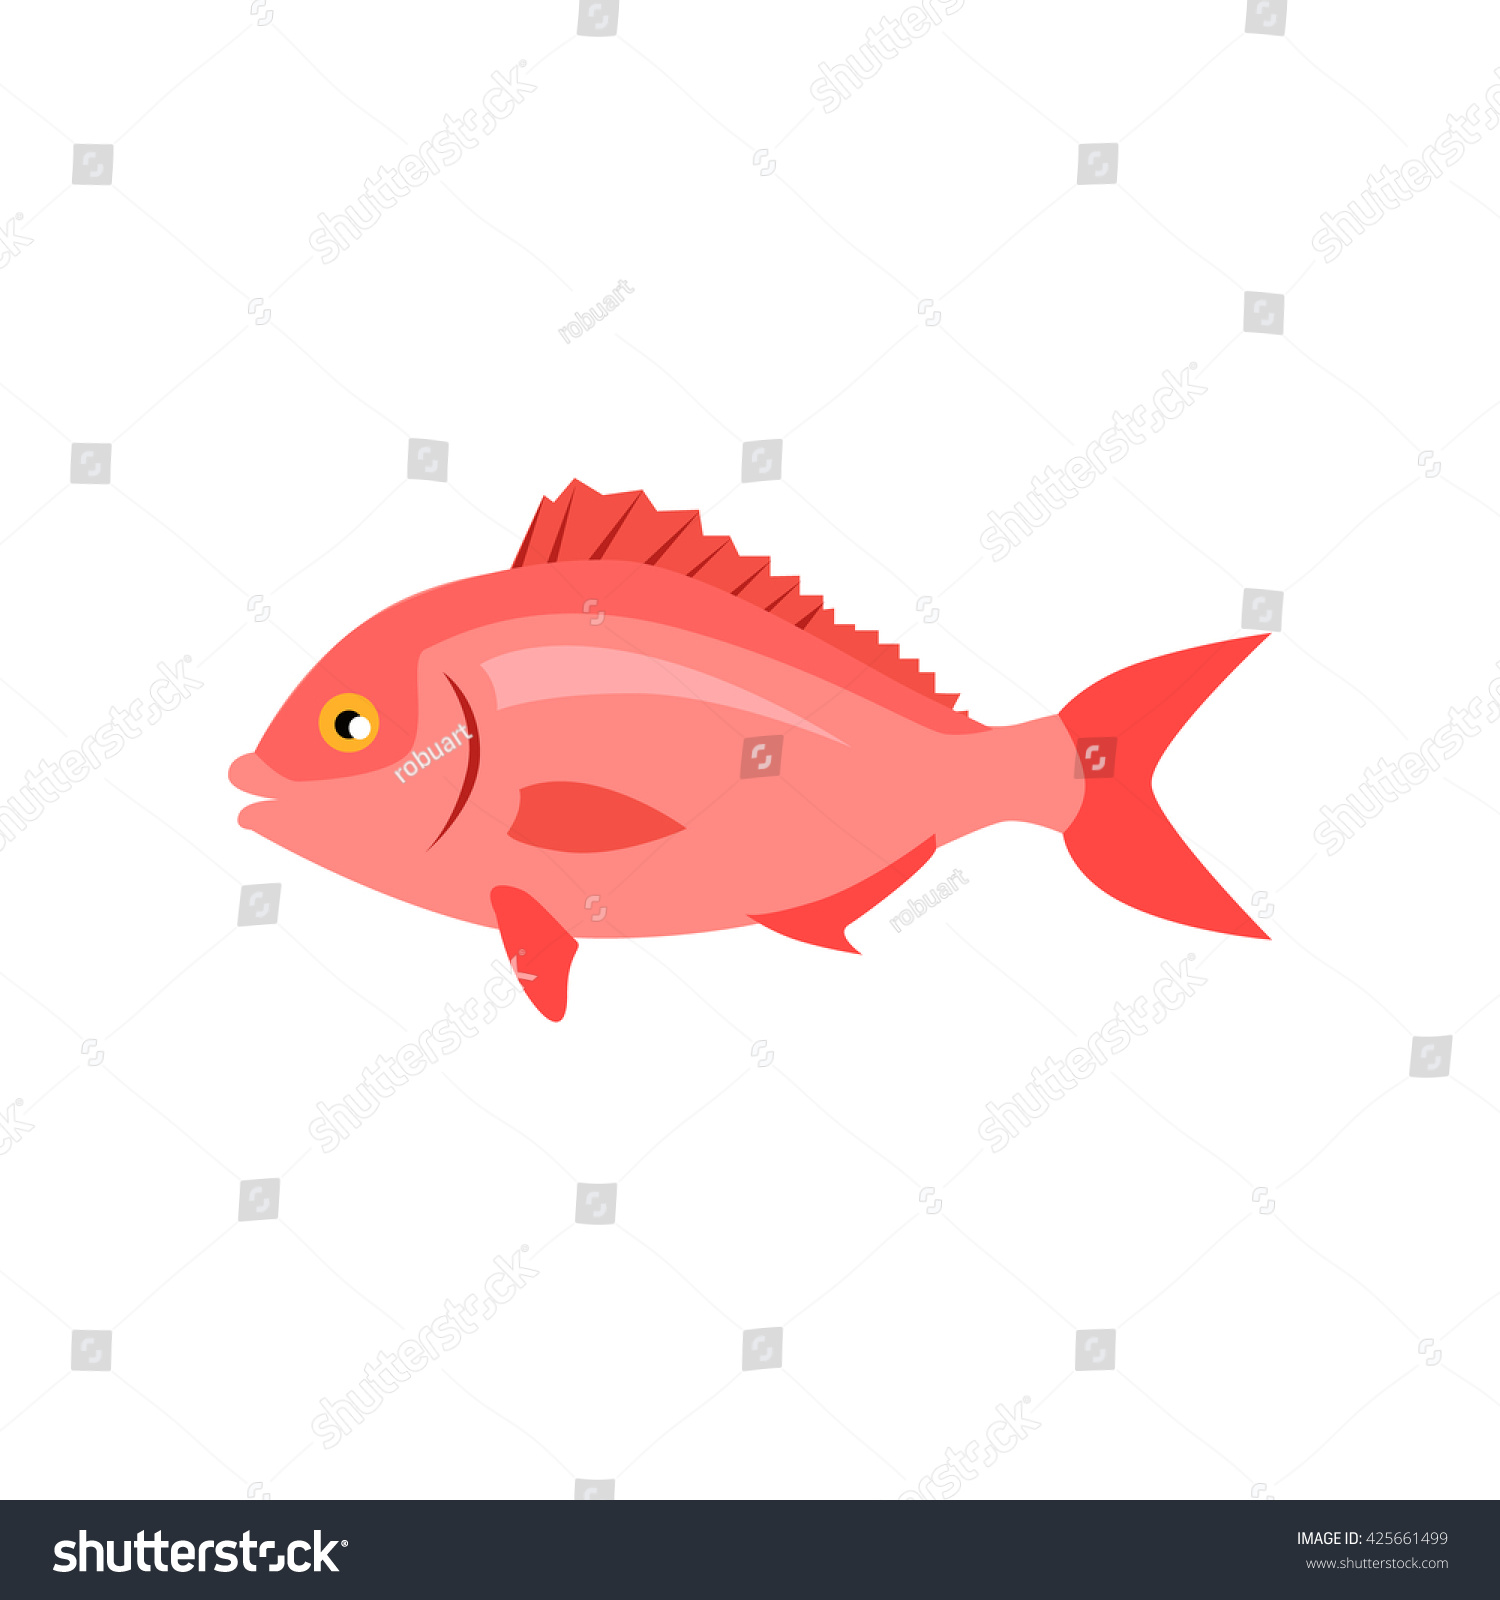 Sea Fish Pink Color Isolated Beautiful Stock Vector 425661499 ...